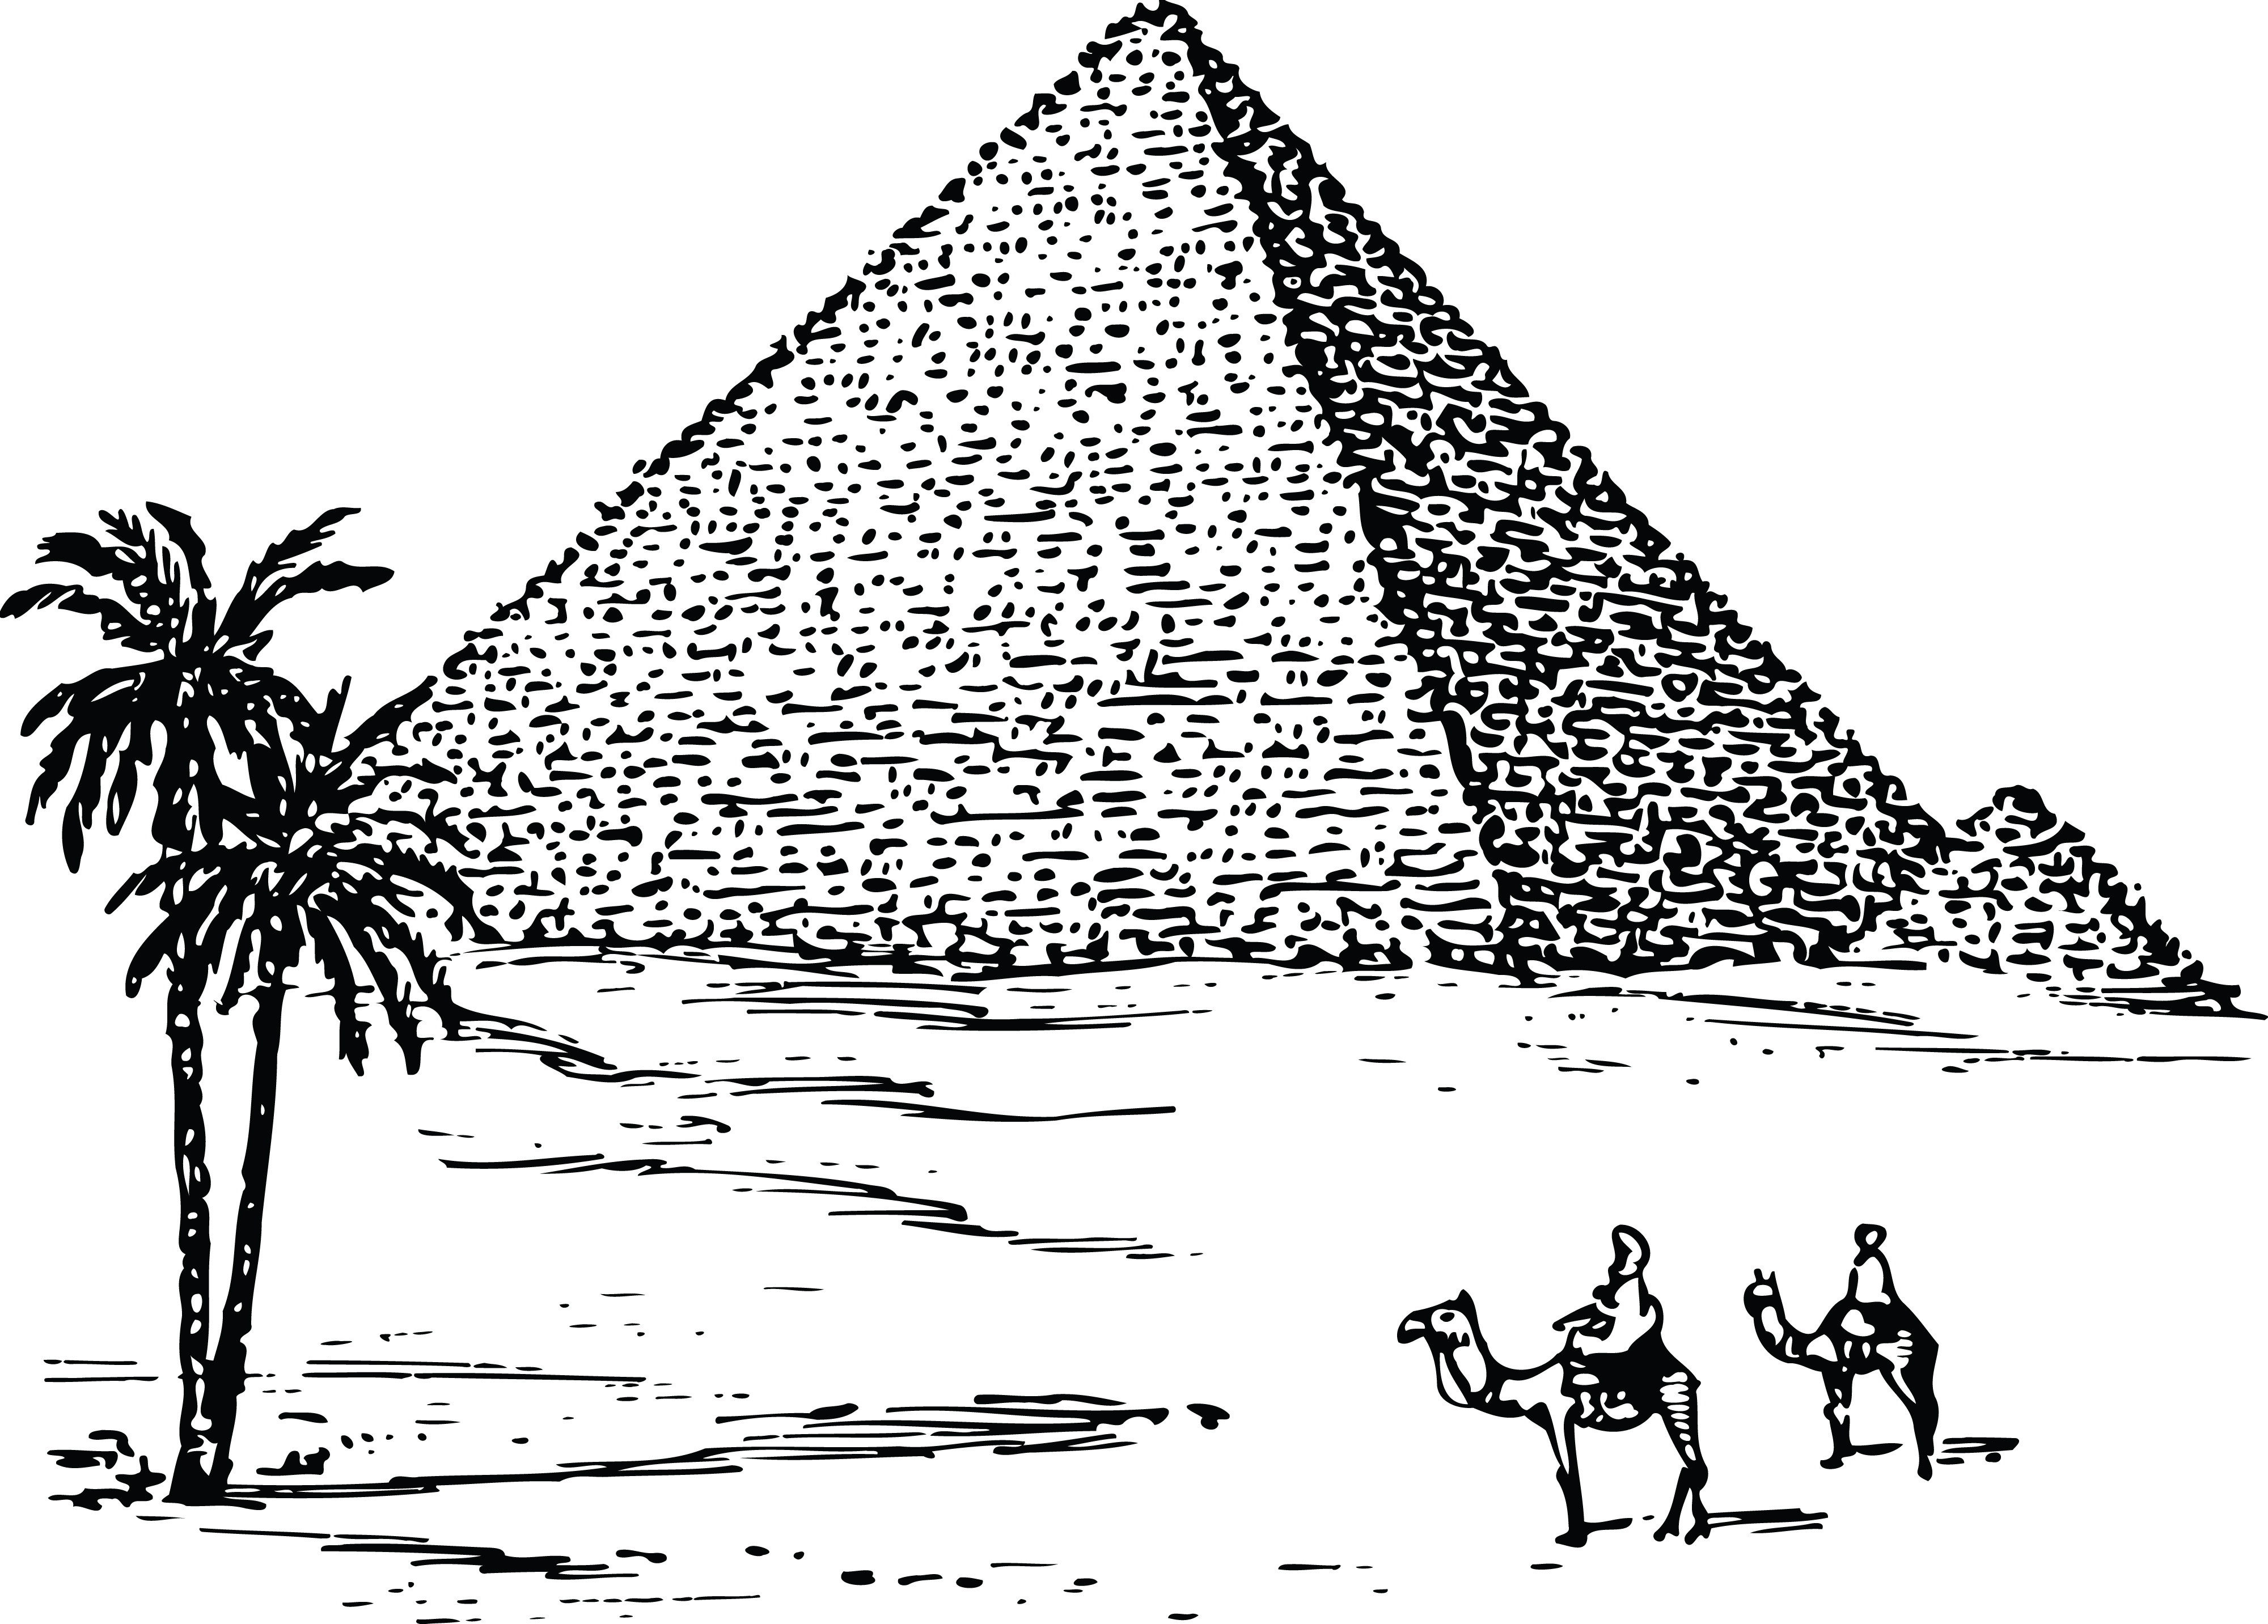 Free Clipart Of The Pyramids Of Giza